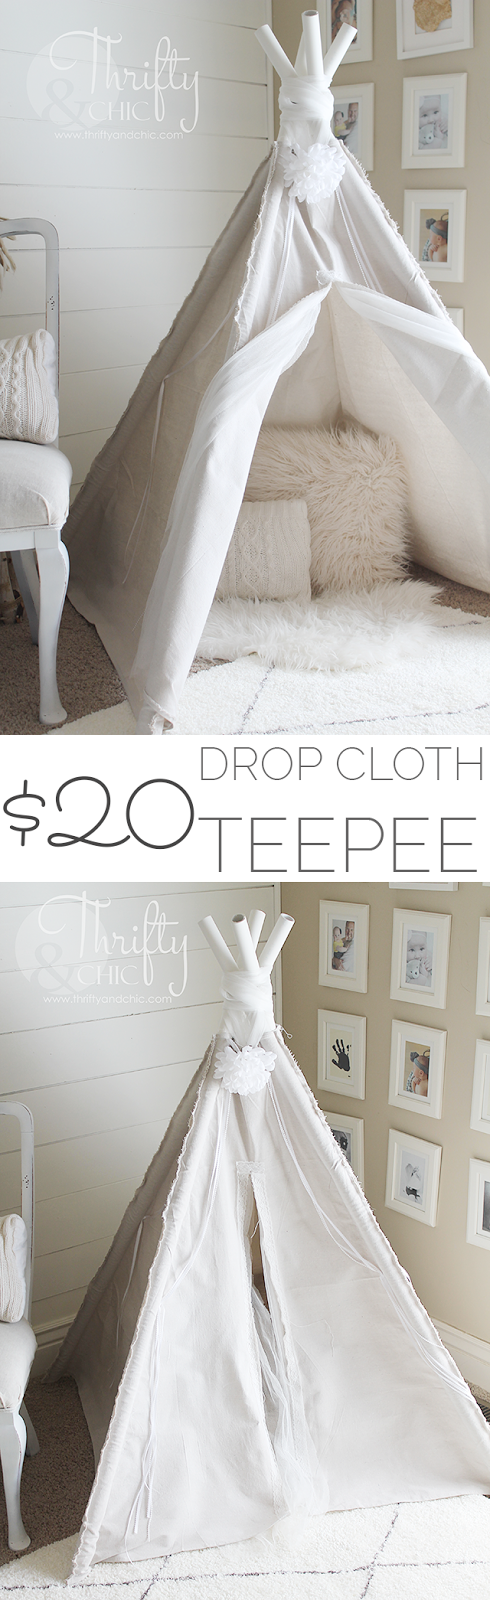 DIY drop cloth teepee for only $20! Cute kids teepee, perfect for the playroom!